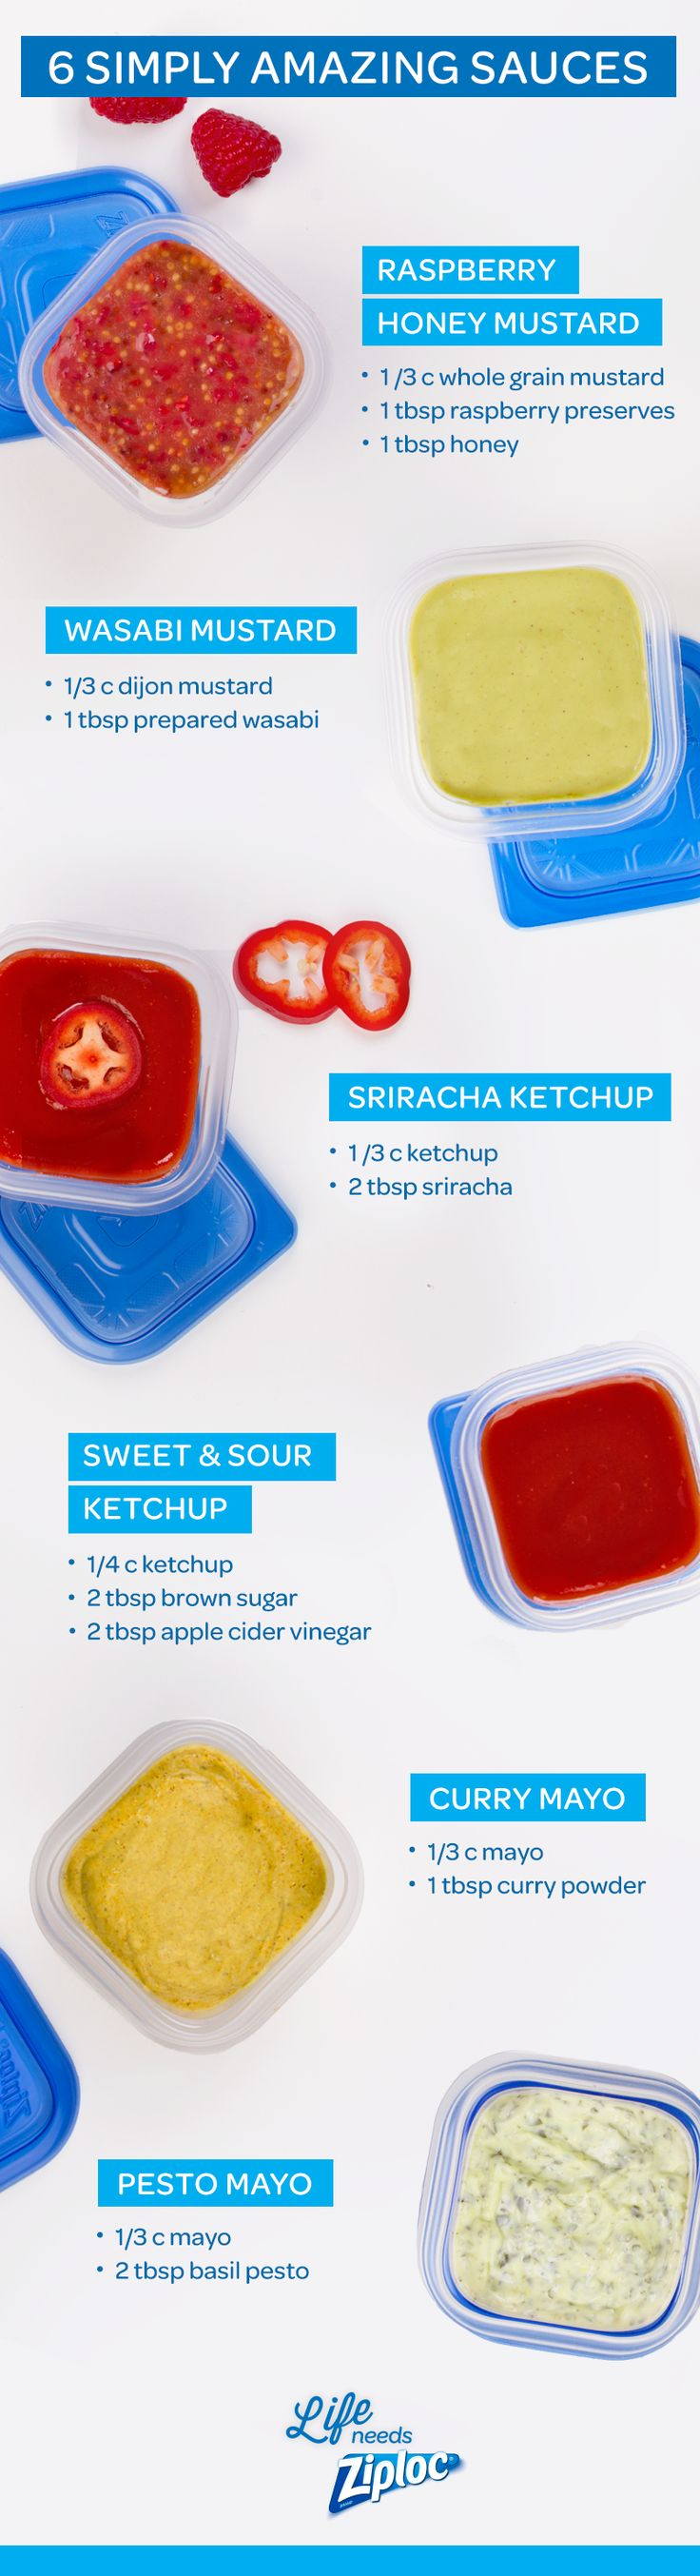 Upgrade your condiments with these easy mix-in ideas. Try homemade raspberry honey mustard, wasabi mustard, sriracha ketchup (or substitute your favorite hot sauce), sweet and sour ketchup, curry mayo or pesto mayonnaise. Add these simple, yet creative homemade sauces to sandwiches, burgers and hot dog topping bars or use them as a fun dip. Perfect recipes for summer picnic and party foods or just grilling for a family meal. Take them to go in a Ziploc® container.